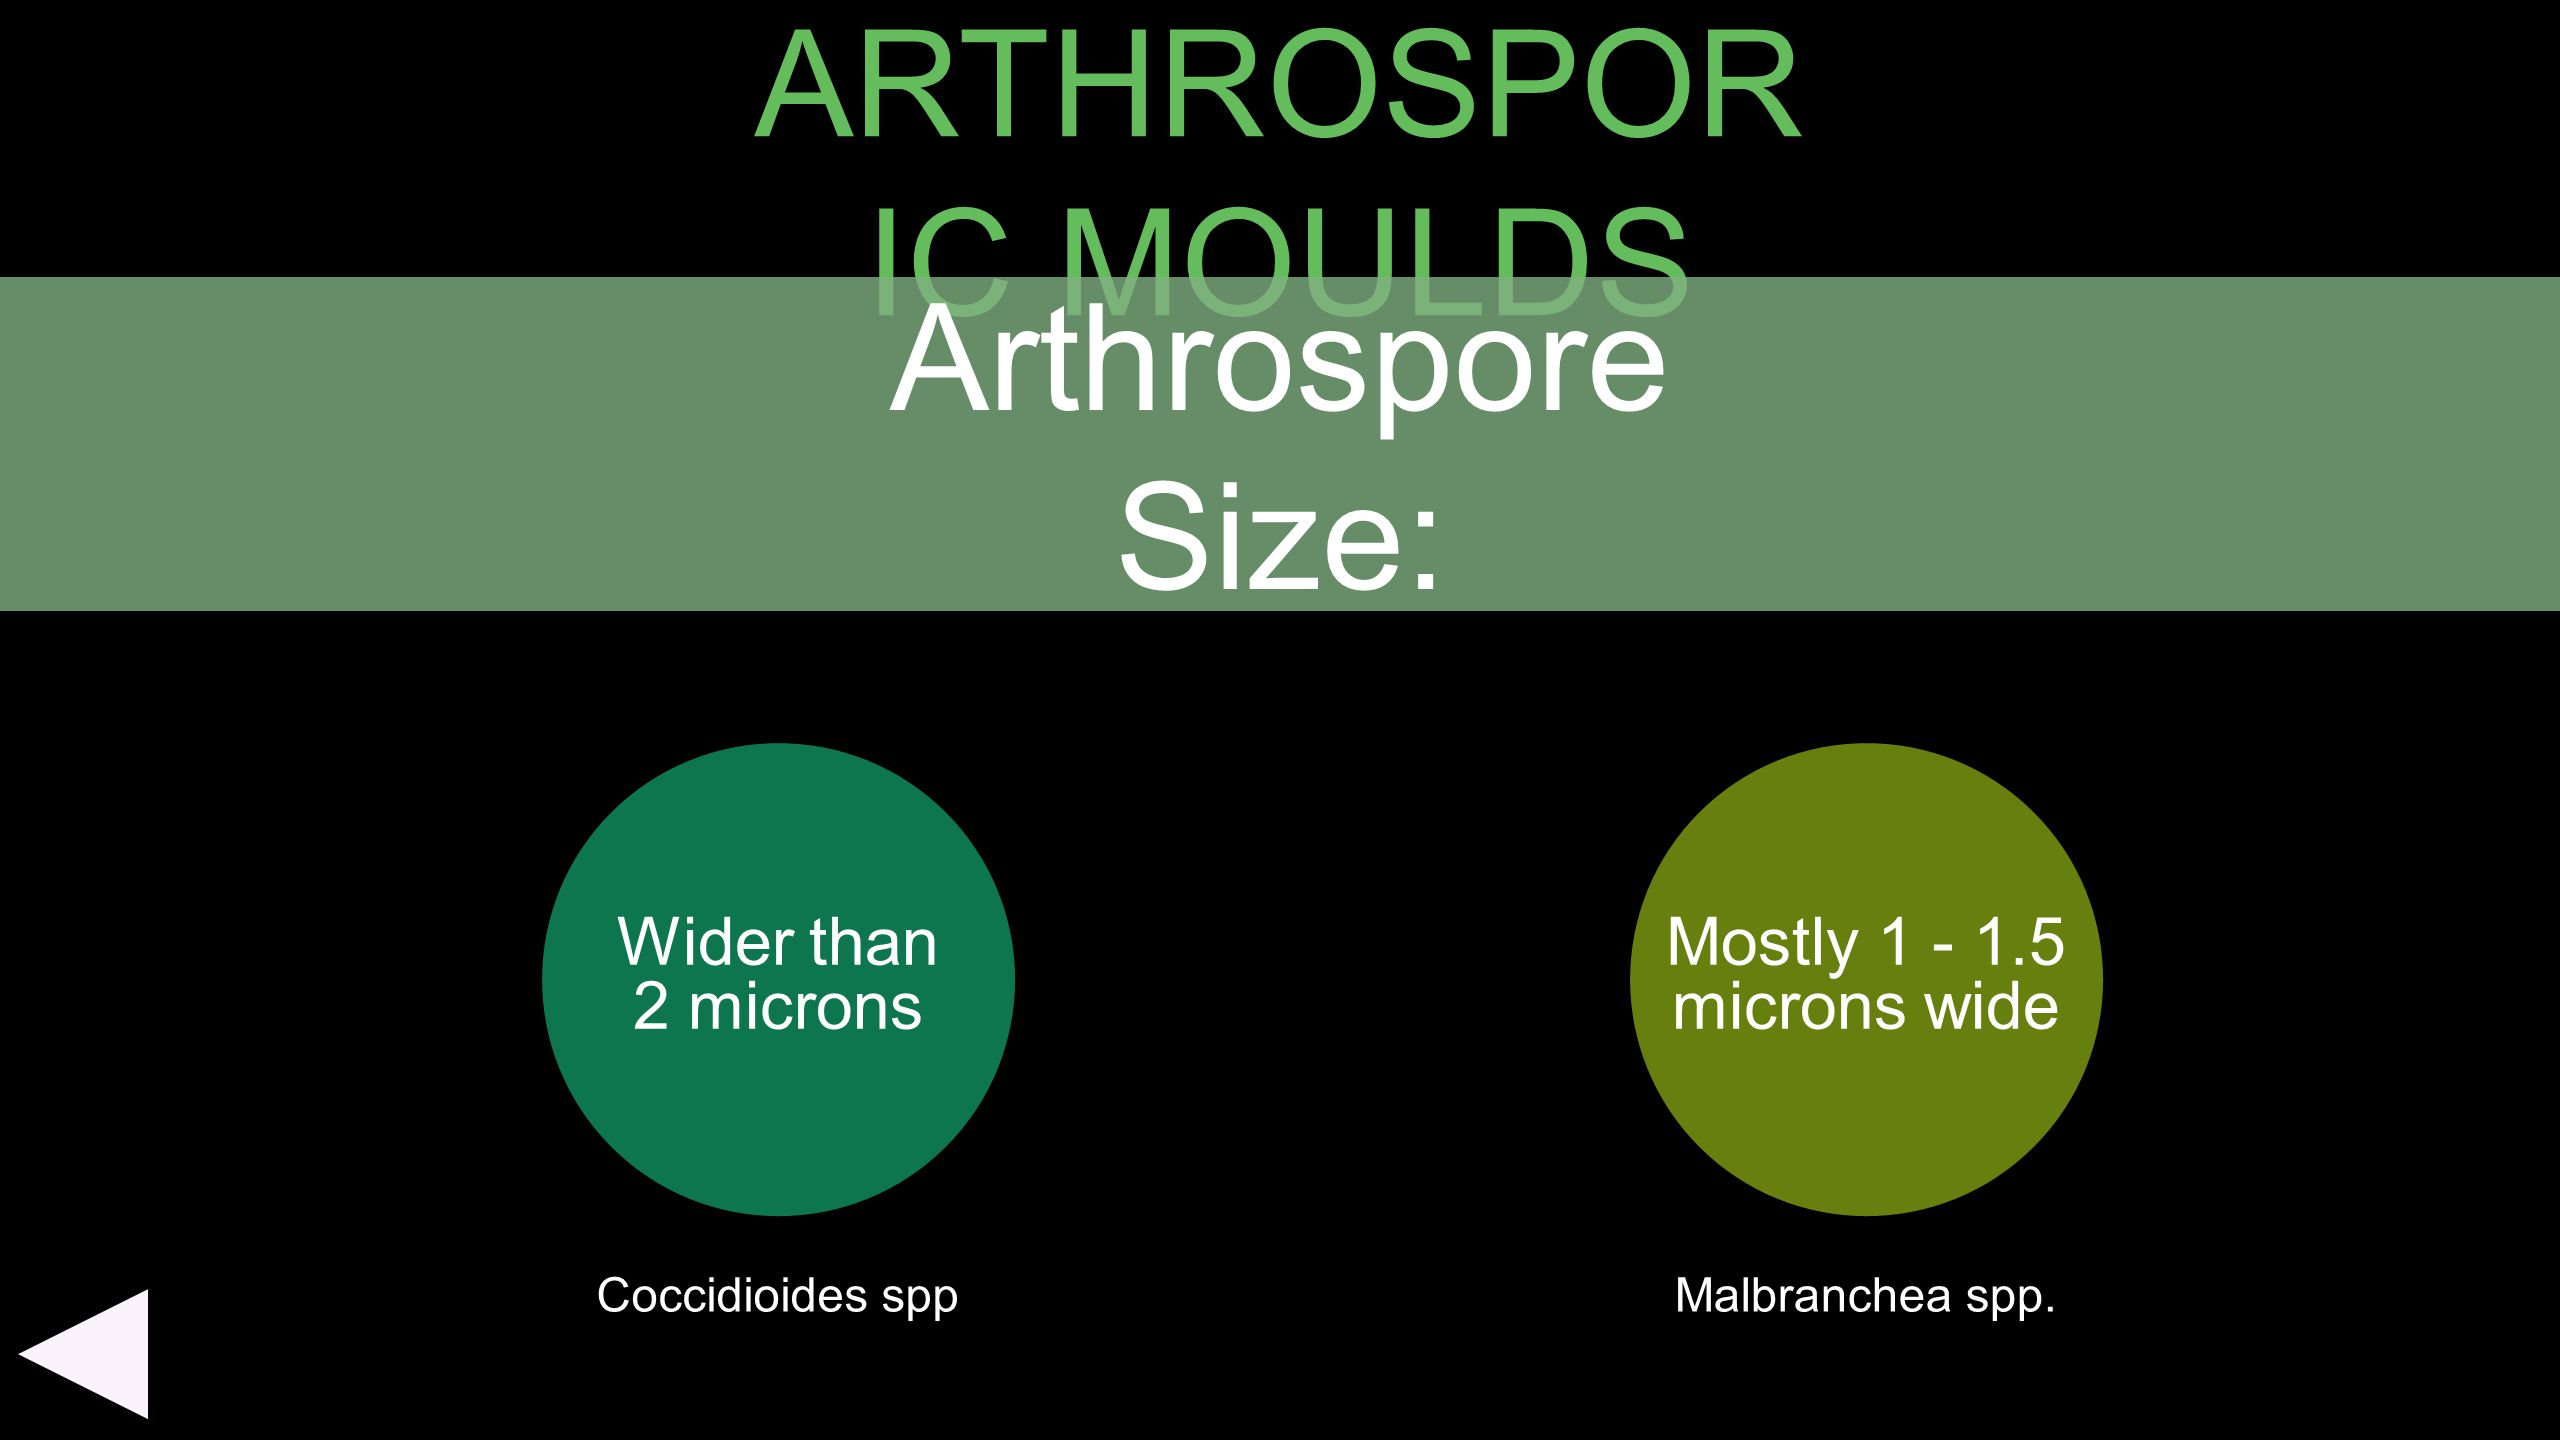 ARTHROSPORIC MOULDS Arthrospore Size: Wider than 2 microns